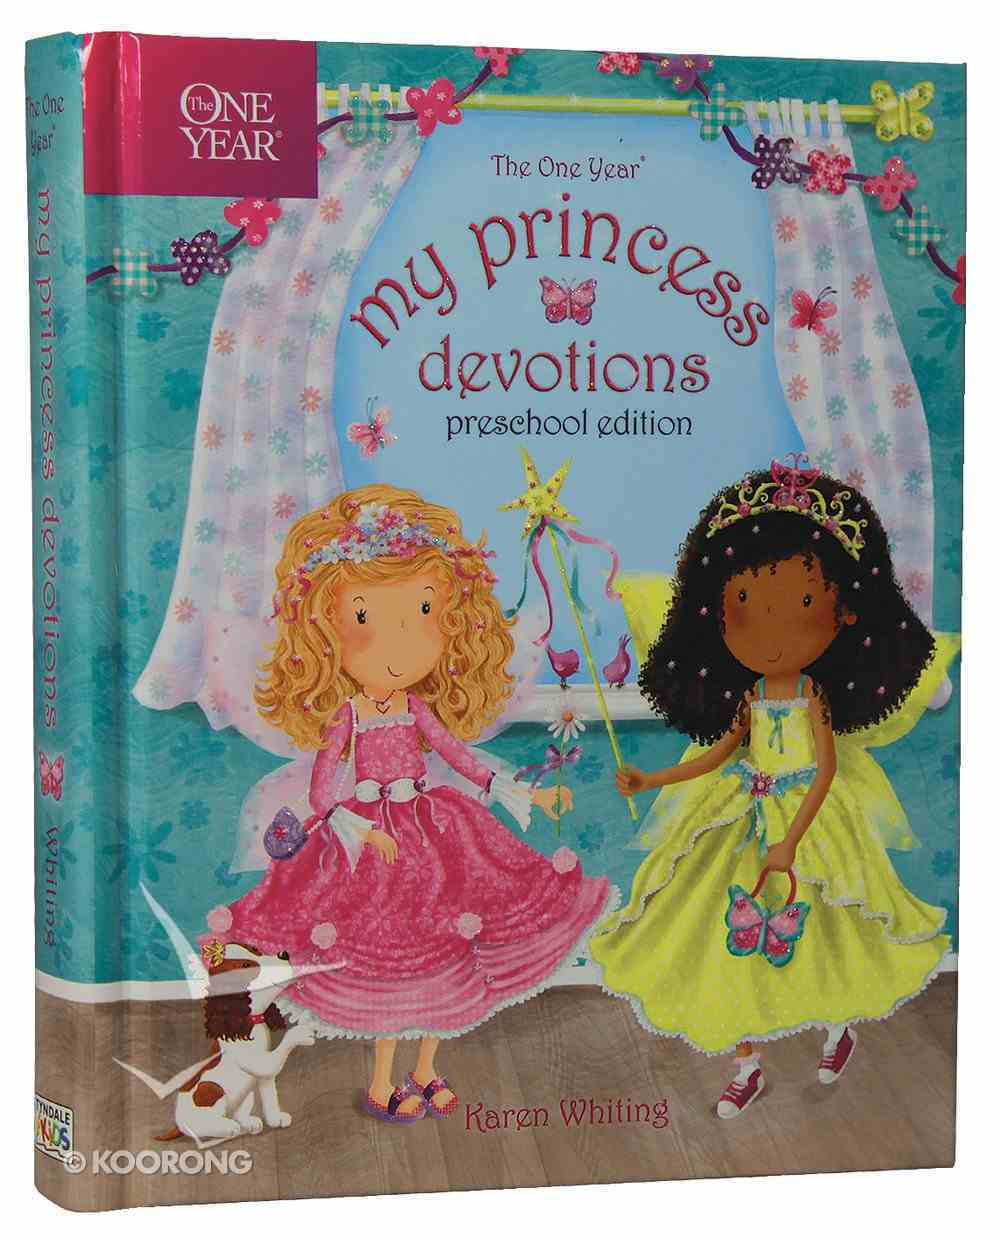 The One Year My Princess Devotions (Preschool Edition) Hardback